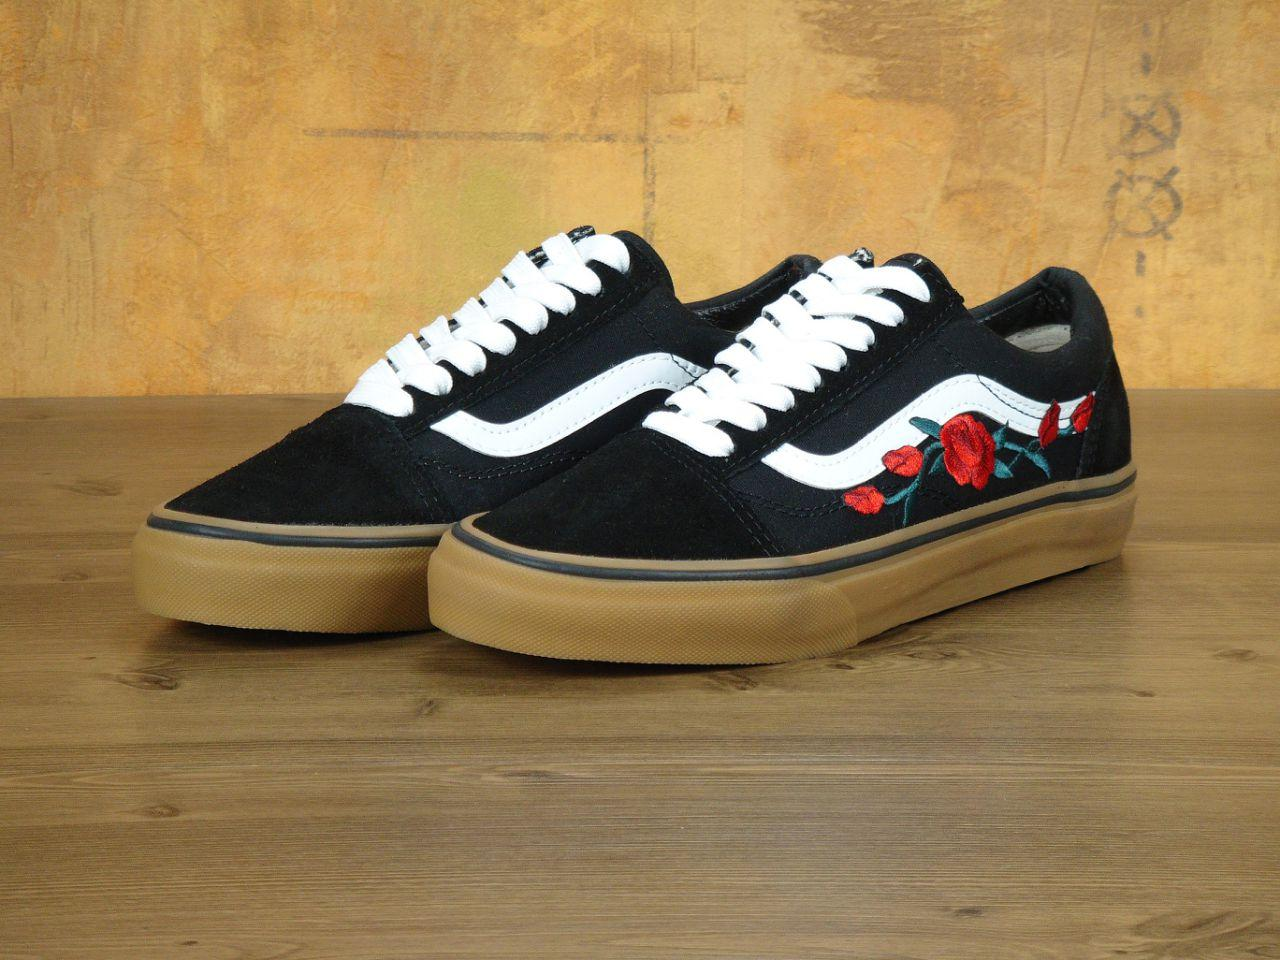 033706bb2 Кеды Vans Old Skool Roses